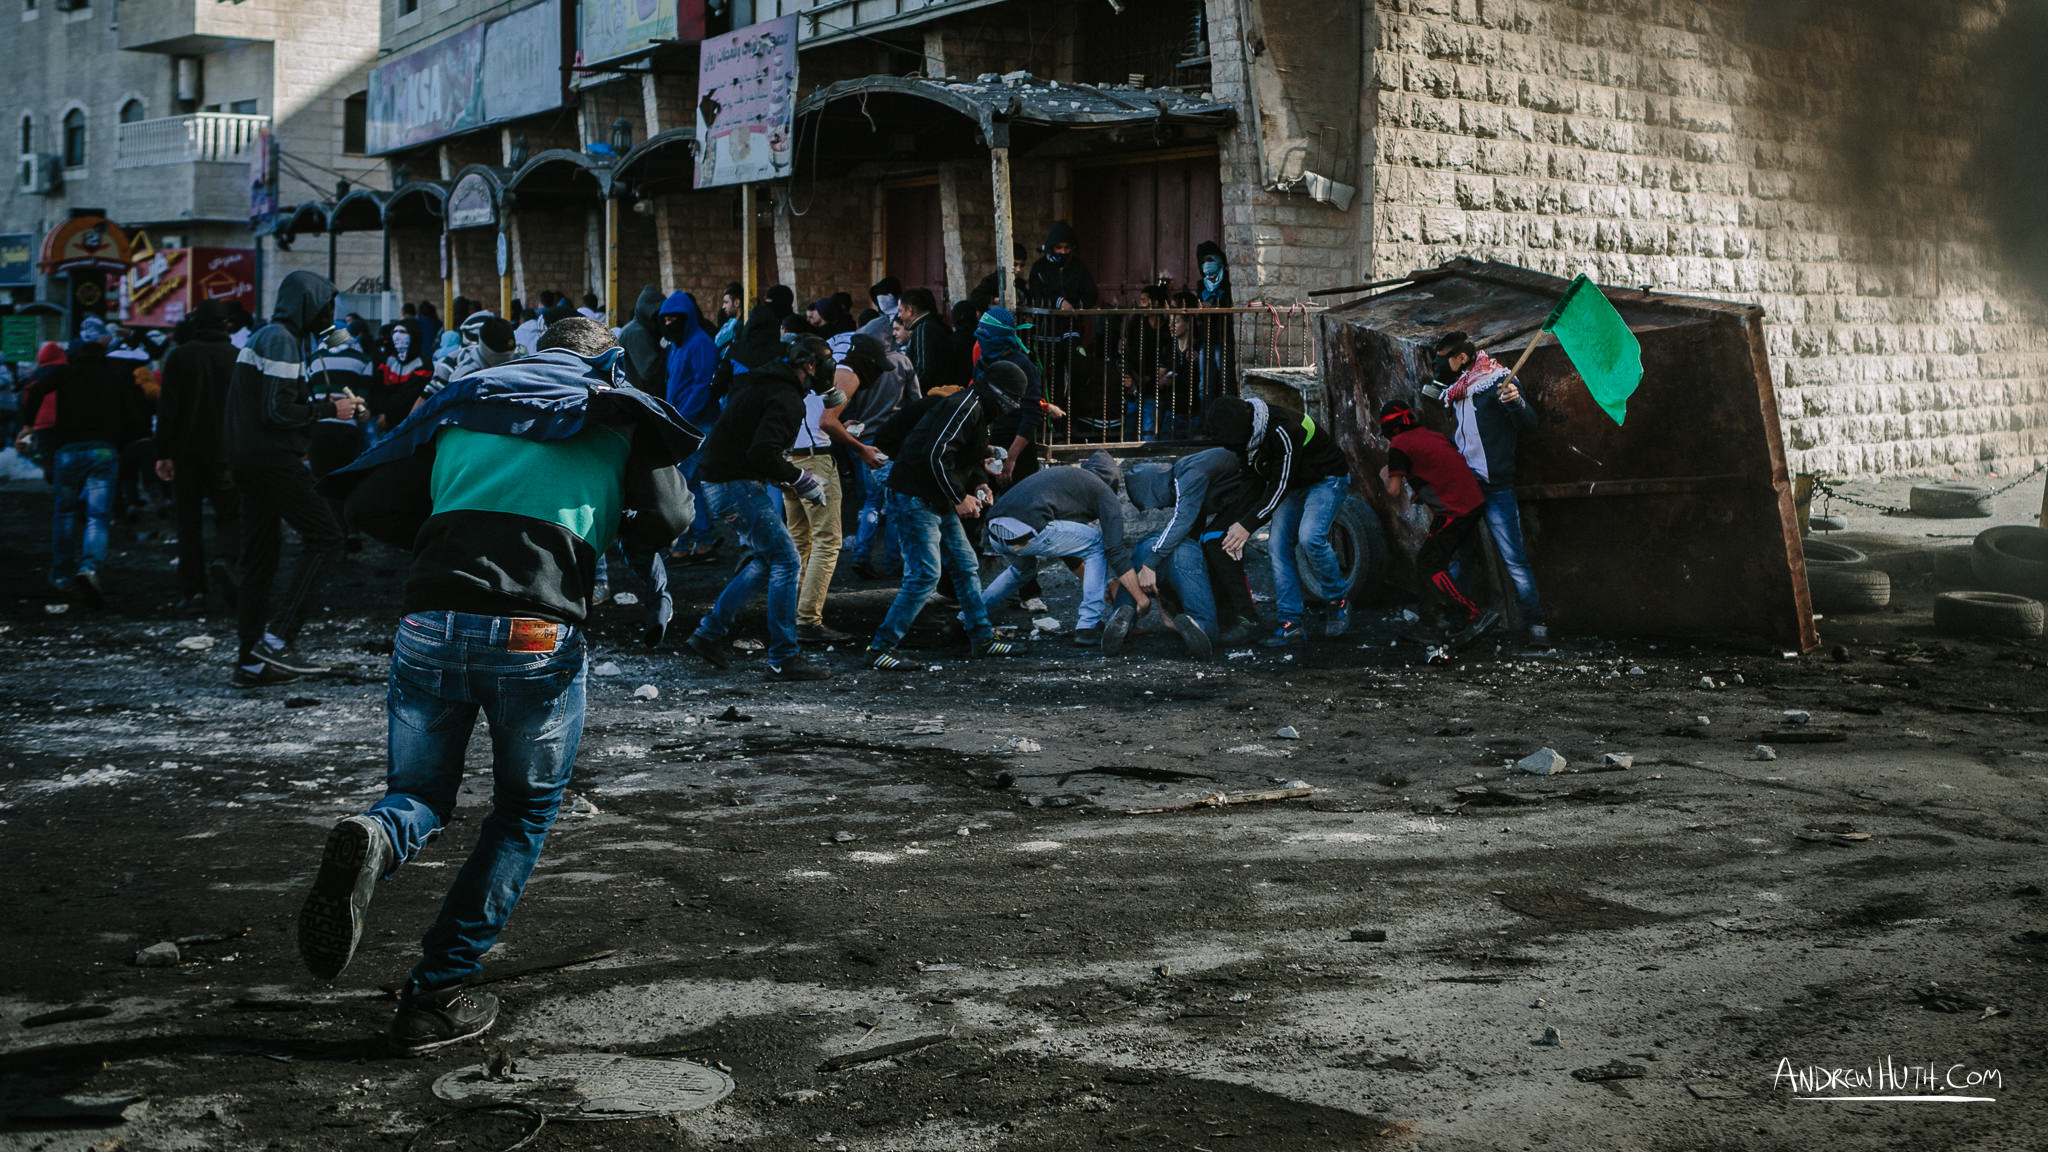 A Palestinian youth gets shot by Israeli military during a clash at Shu'afat Refugee Camp.  Palestinian youth clash with Israeli military in Shu'afat Refugee Camp in East Jerusalem on Friday, November 7, 2014. The recent, but temporarily total closure of one of Muslim's holiest sites, the Al-Aqsa Mosque, (the first since 1967) and the subsequent limited access for many Muslims to the mosque since has raised tension between Israeli's military and the Arab community.